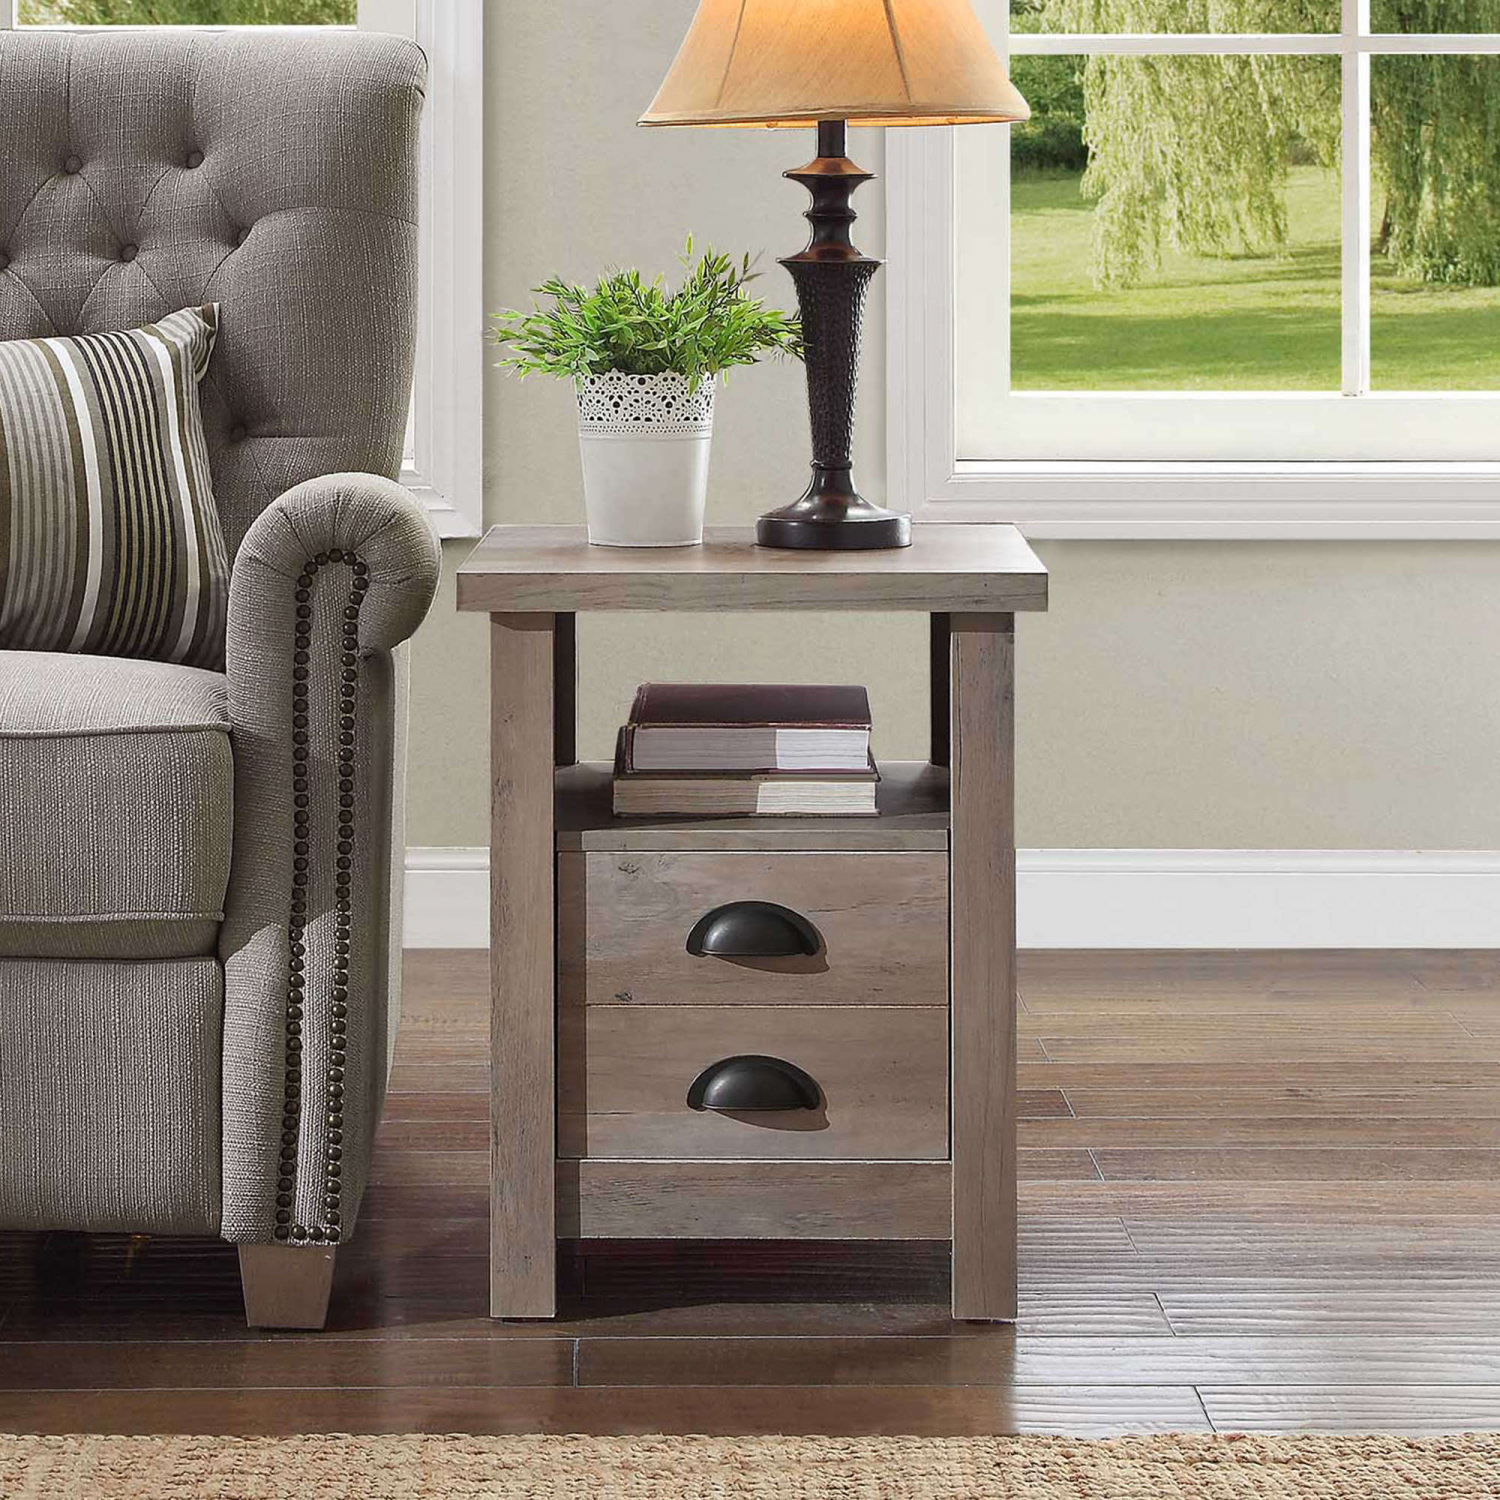 modern farmhouse end table living room rustic gray storage drawer better homes and gar res tables details about mirrored nightstand where ethan allen furniture made cherry